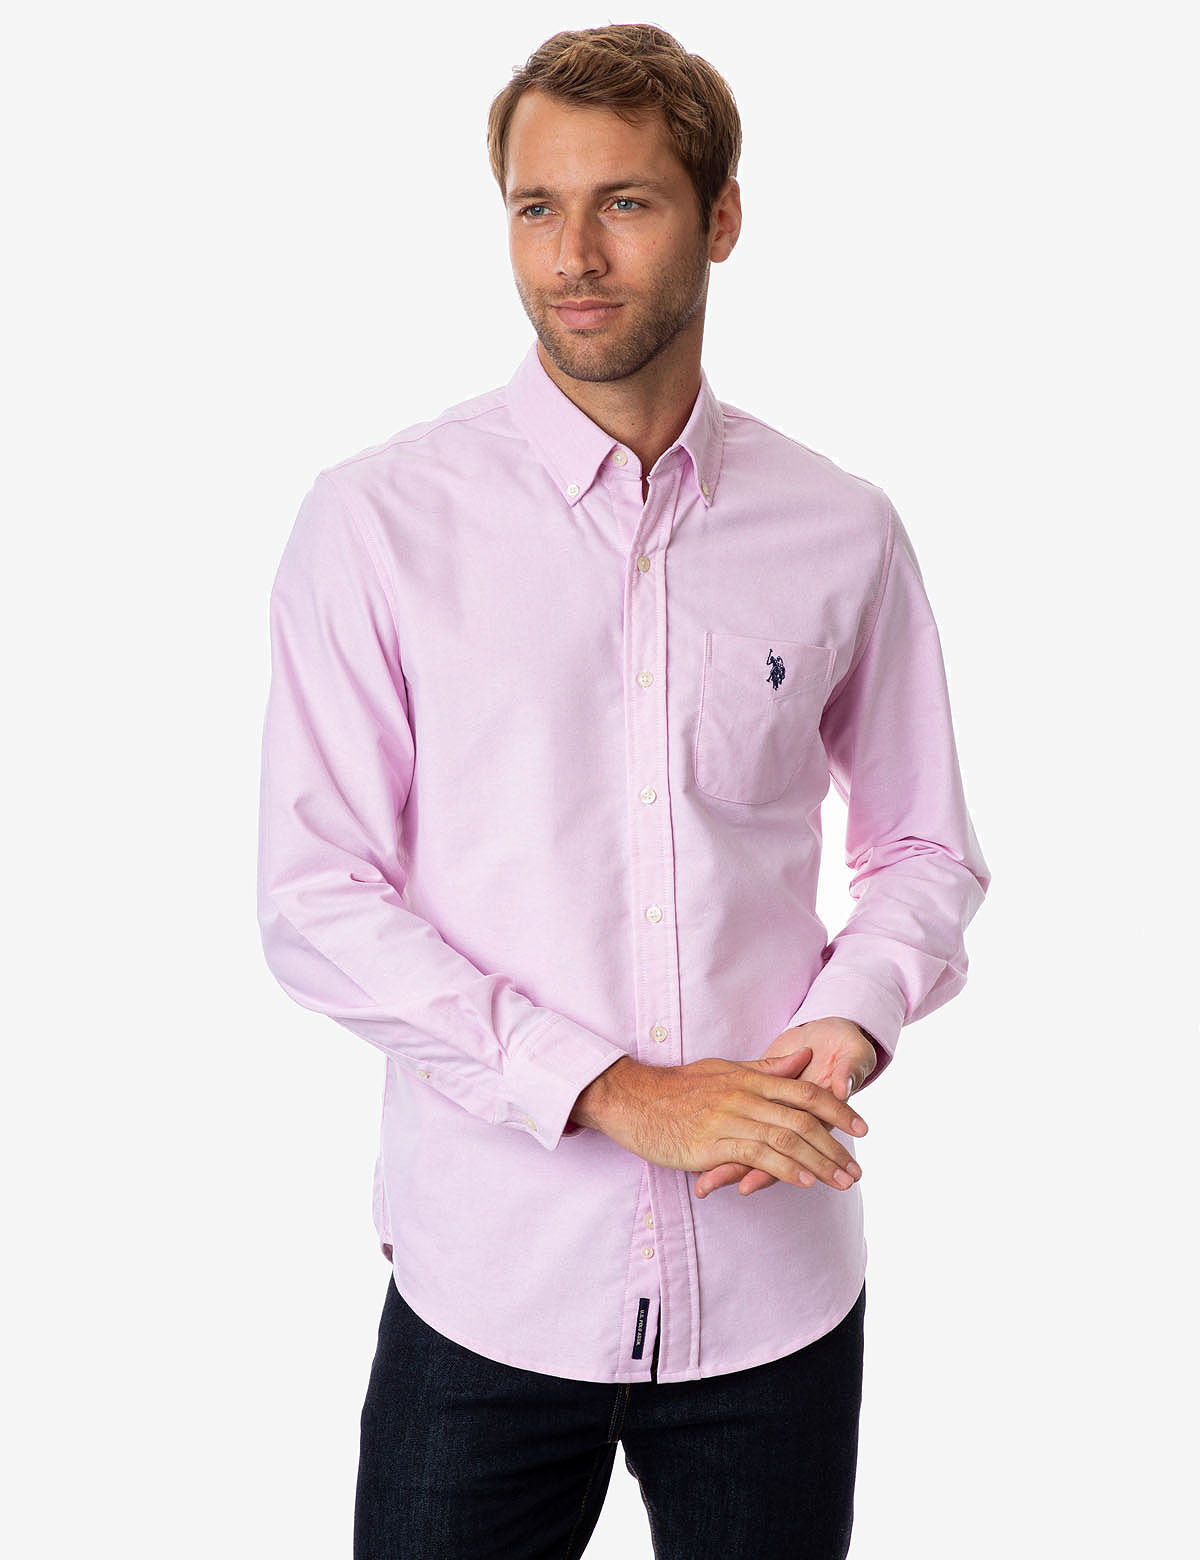 Mens Crewneck Long Sleeve Shirts,Males Casual Plus Size Retro Linen Blend Lace Up Top Button Up Solid Blouse